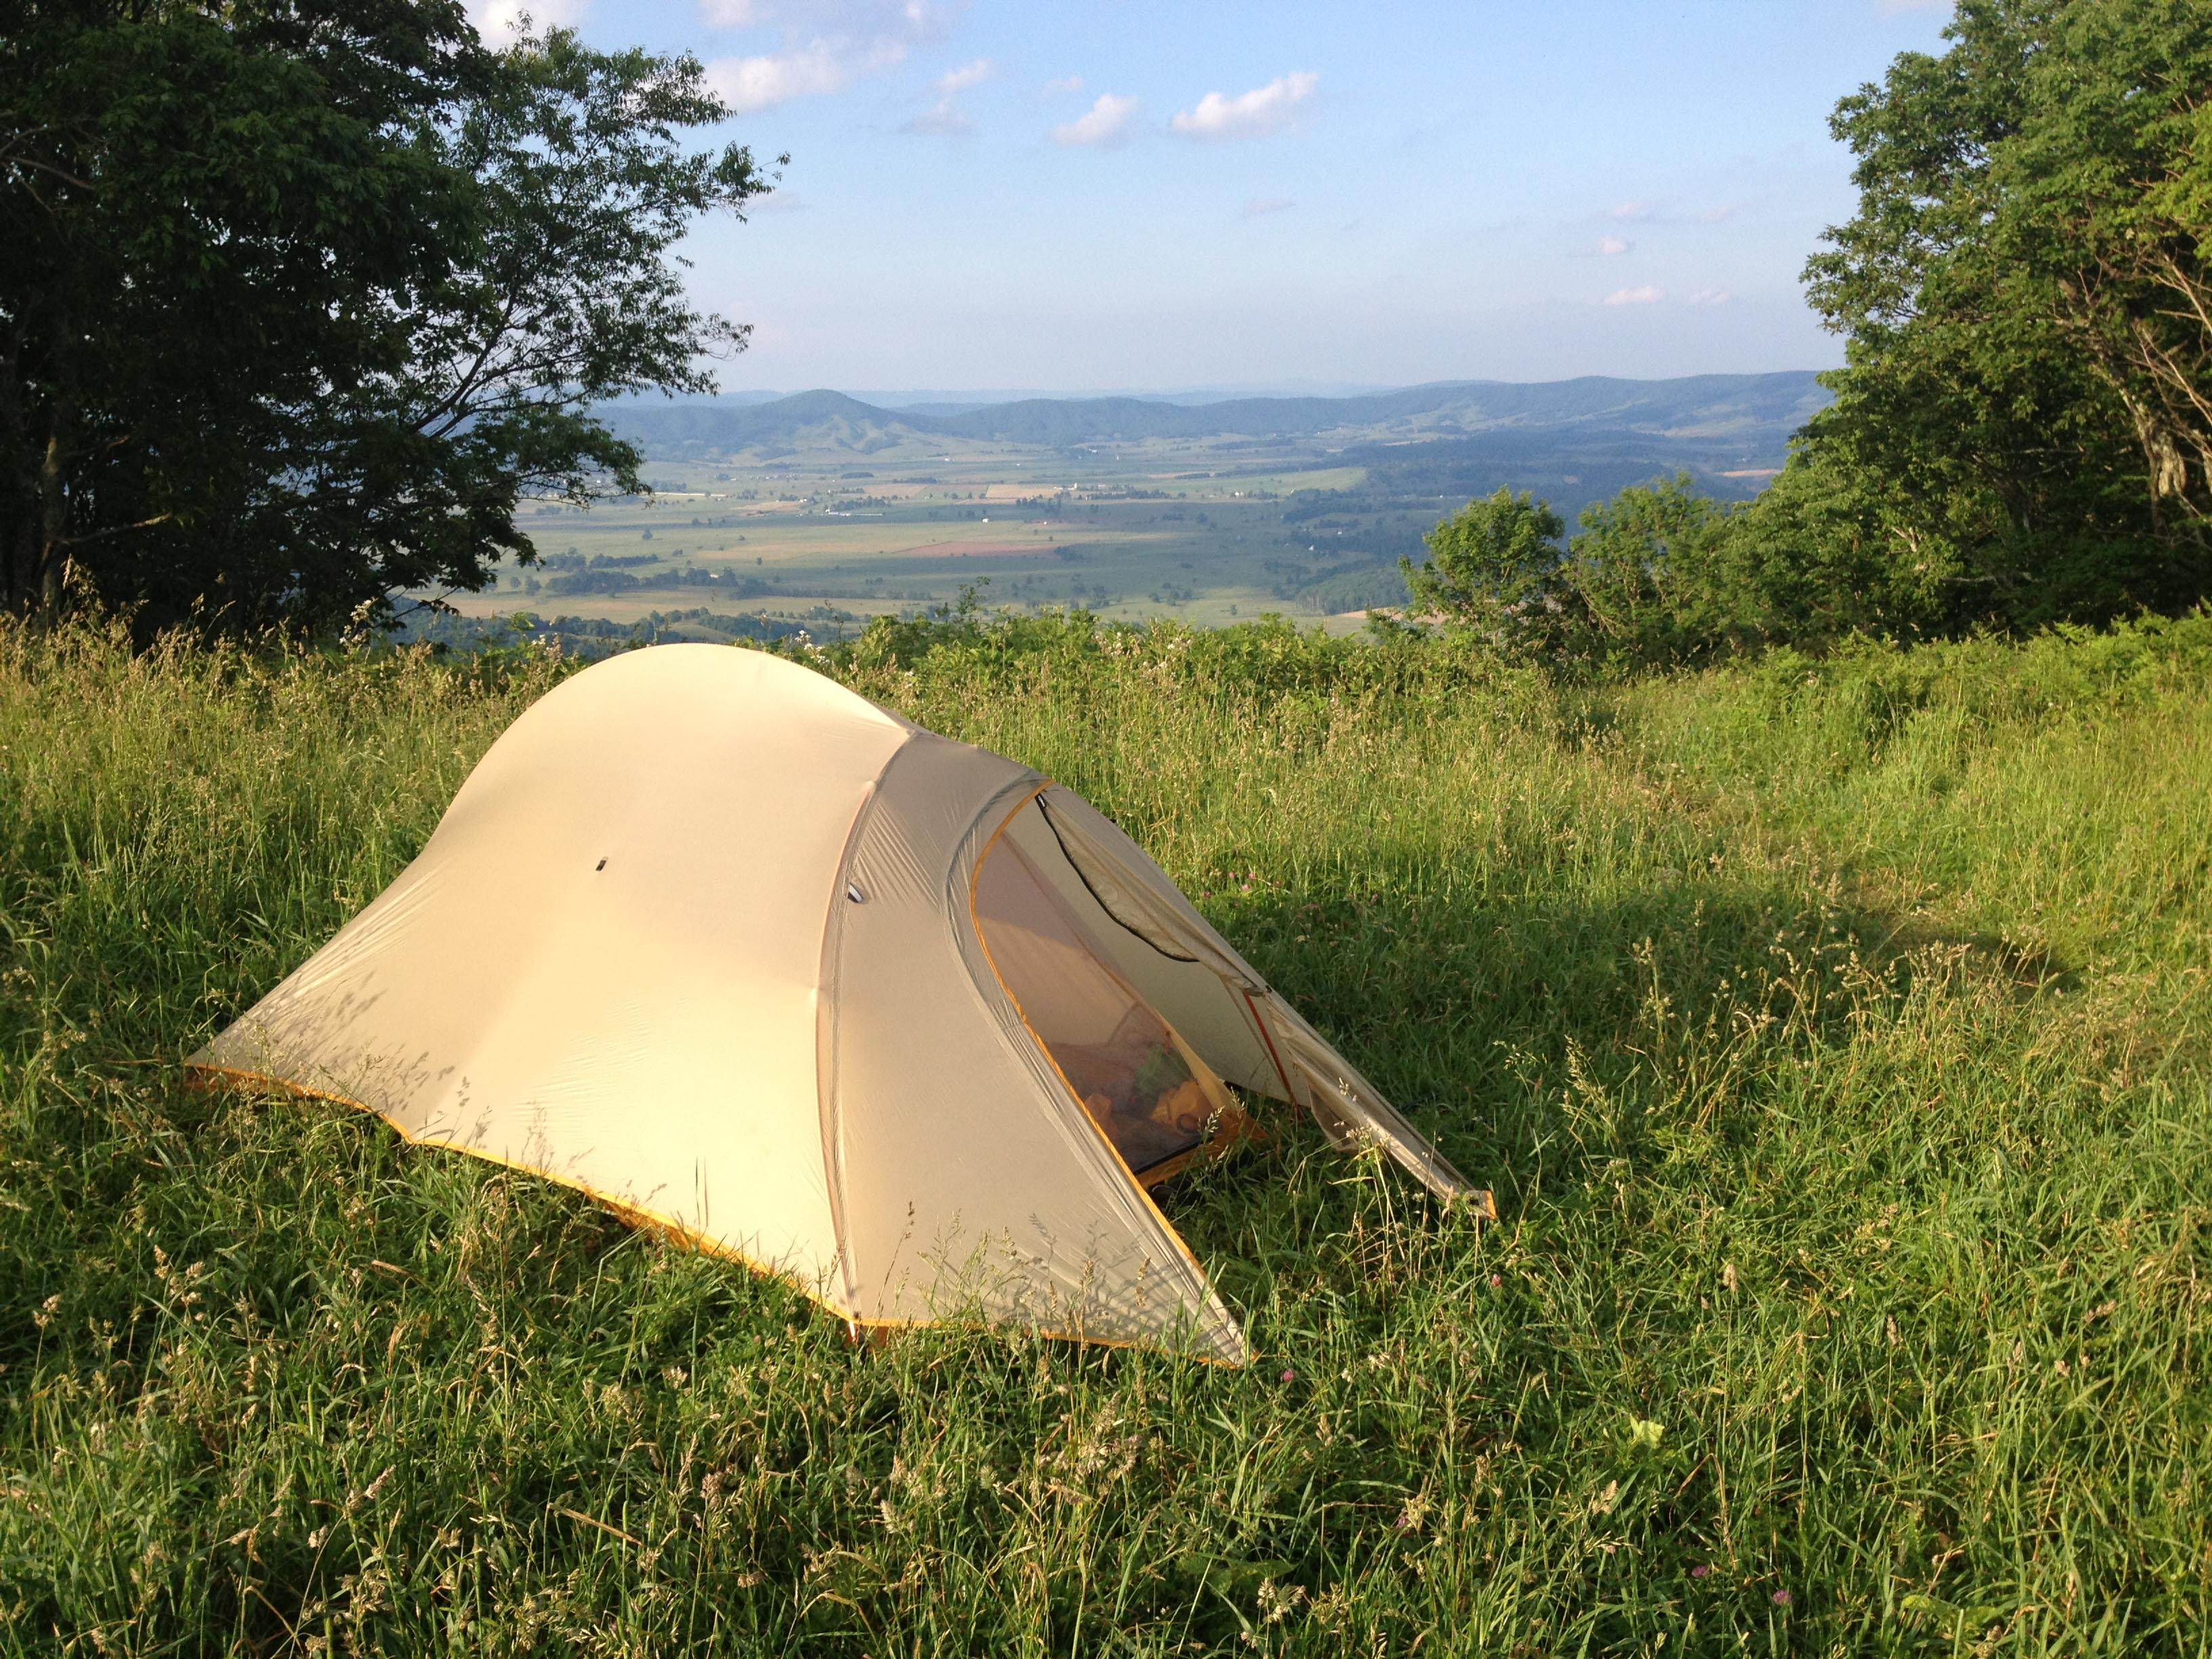 For my 2013 solo thru-hike of the AT I needed a lightweight durable easy to set up tent that would both keep me and my pack dry. & Thru-Hike Tent Review: The Fly Creek UL2 u2013 Patches Thru